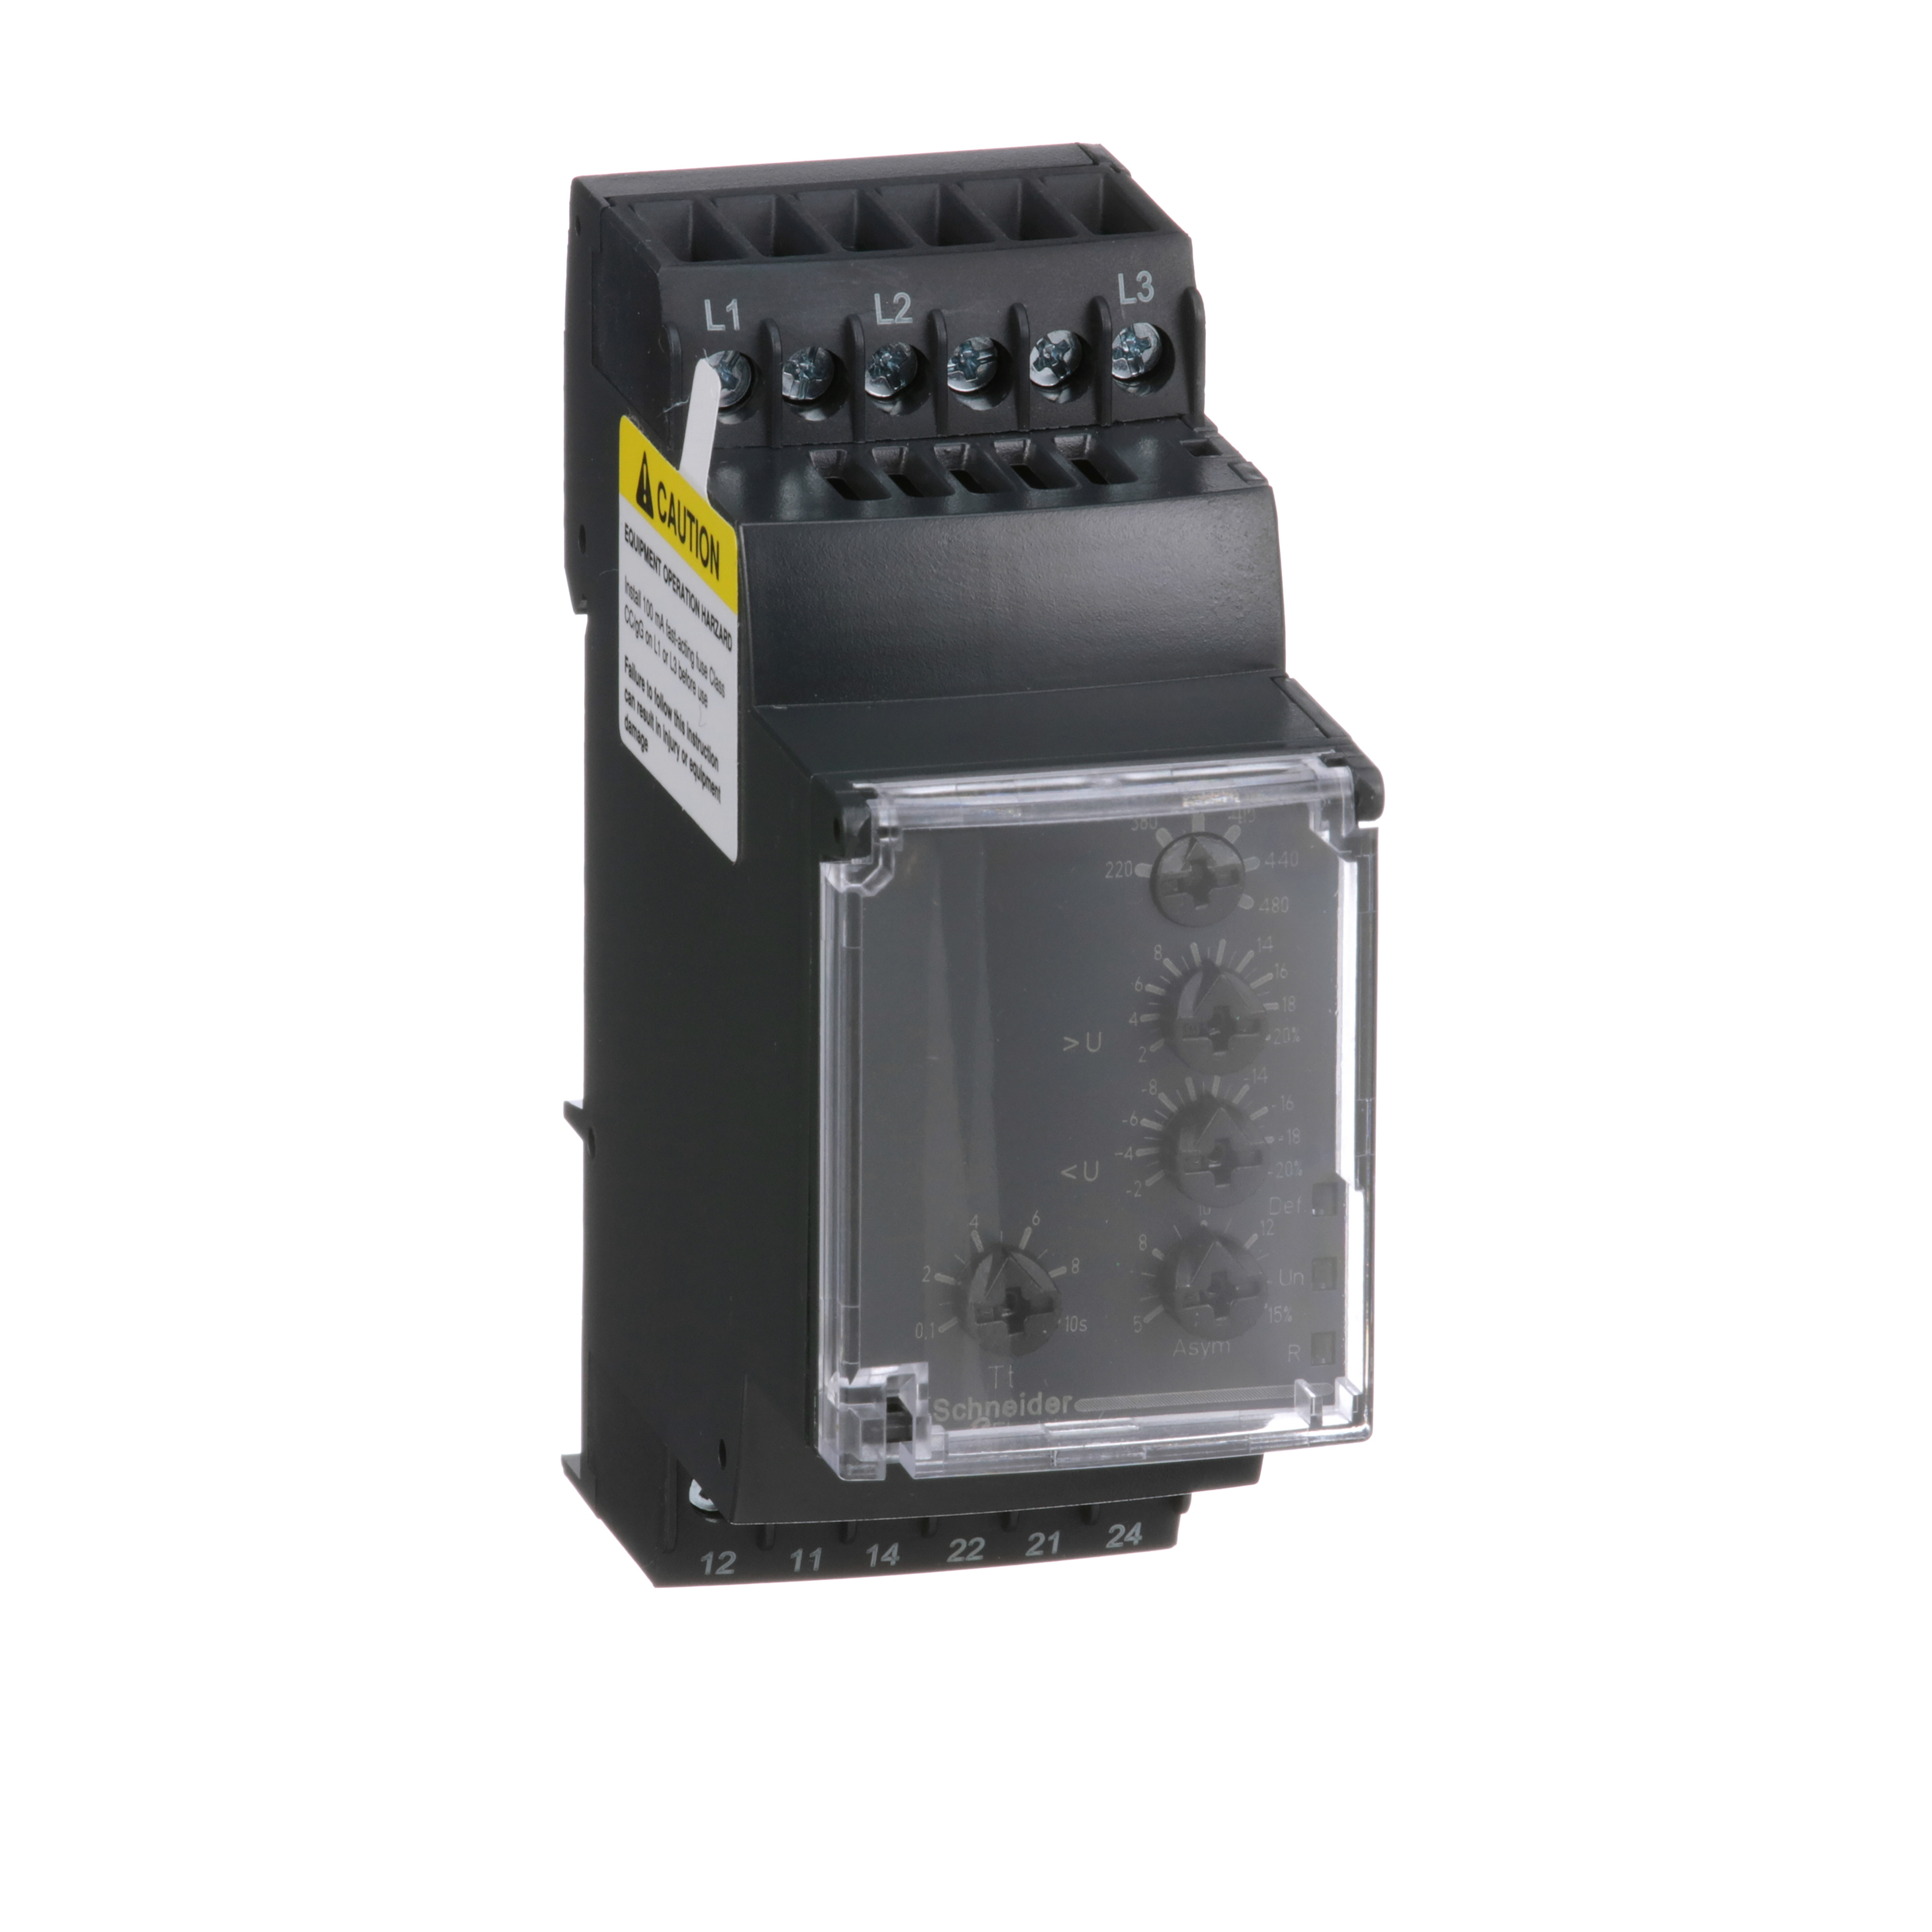 SQUARE D Zelio, 3 phase supply control relay, range 220 to 480 VAC, sequence, phase failure, phase imbalance, voltage